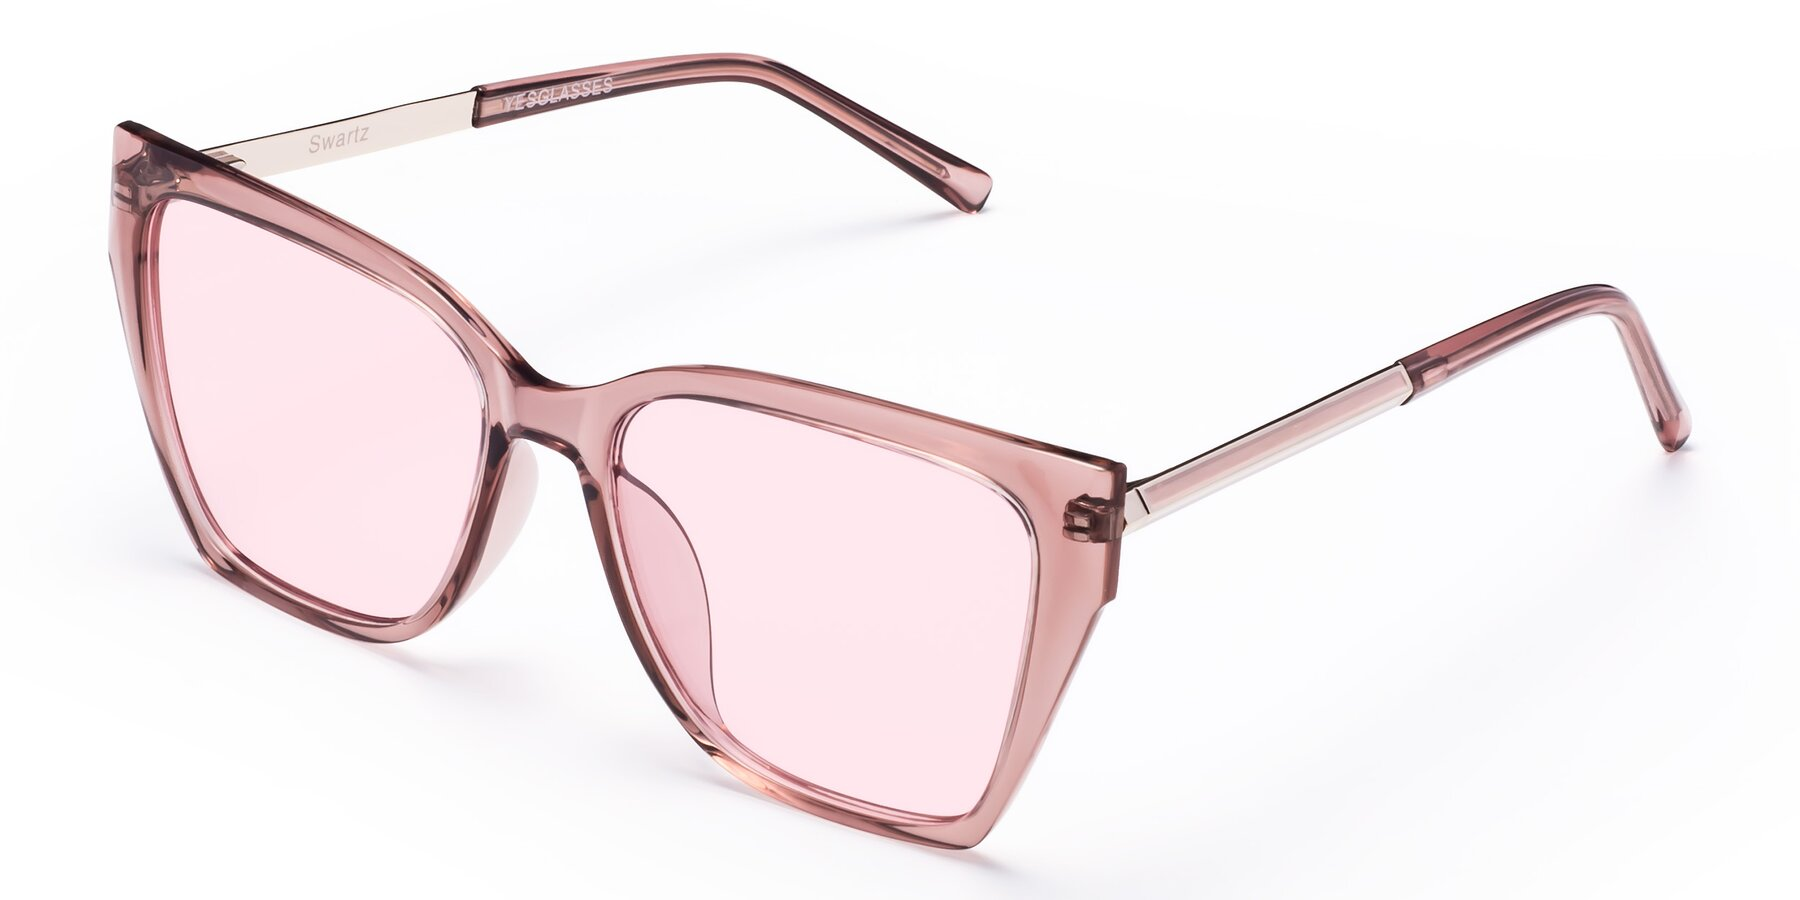 Angle of Swartz in Grape with Light Pink Tinted Lenses